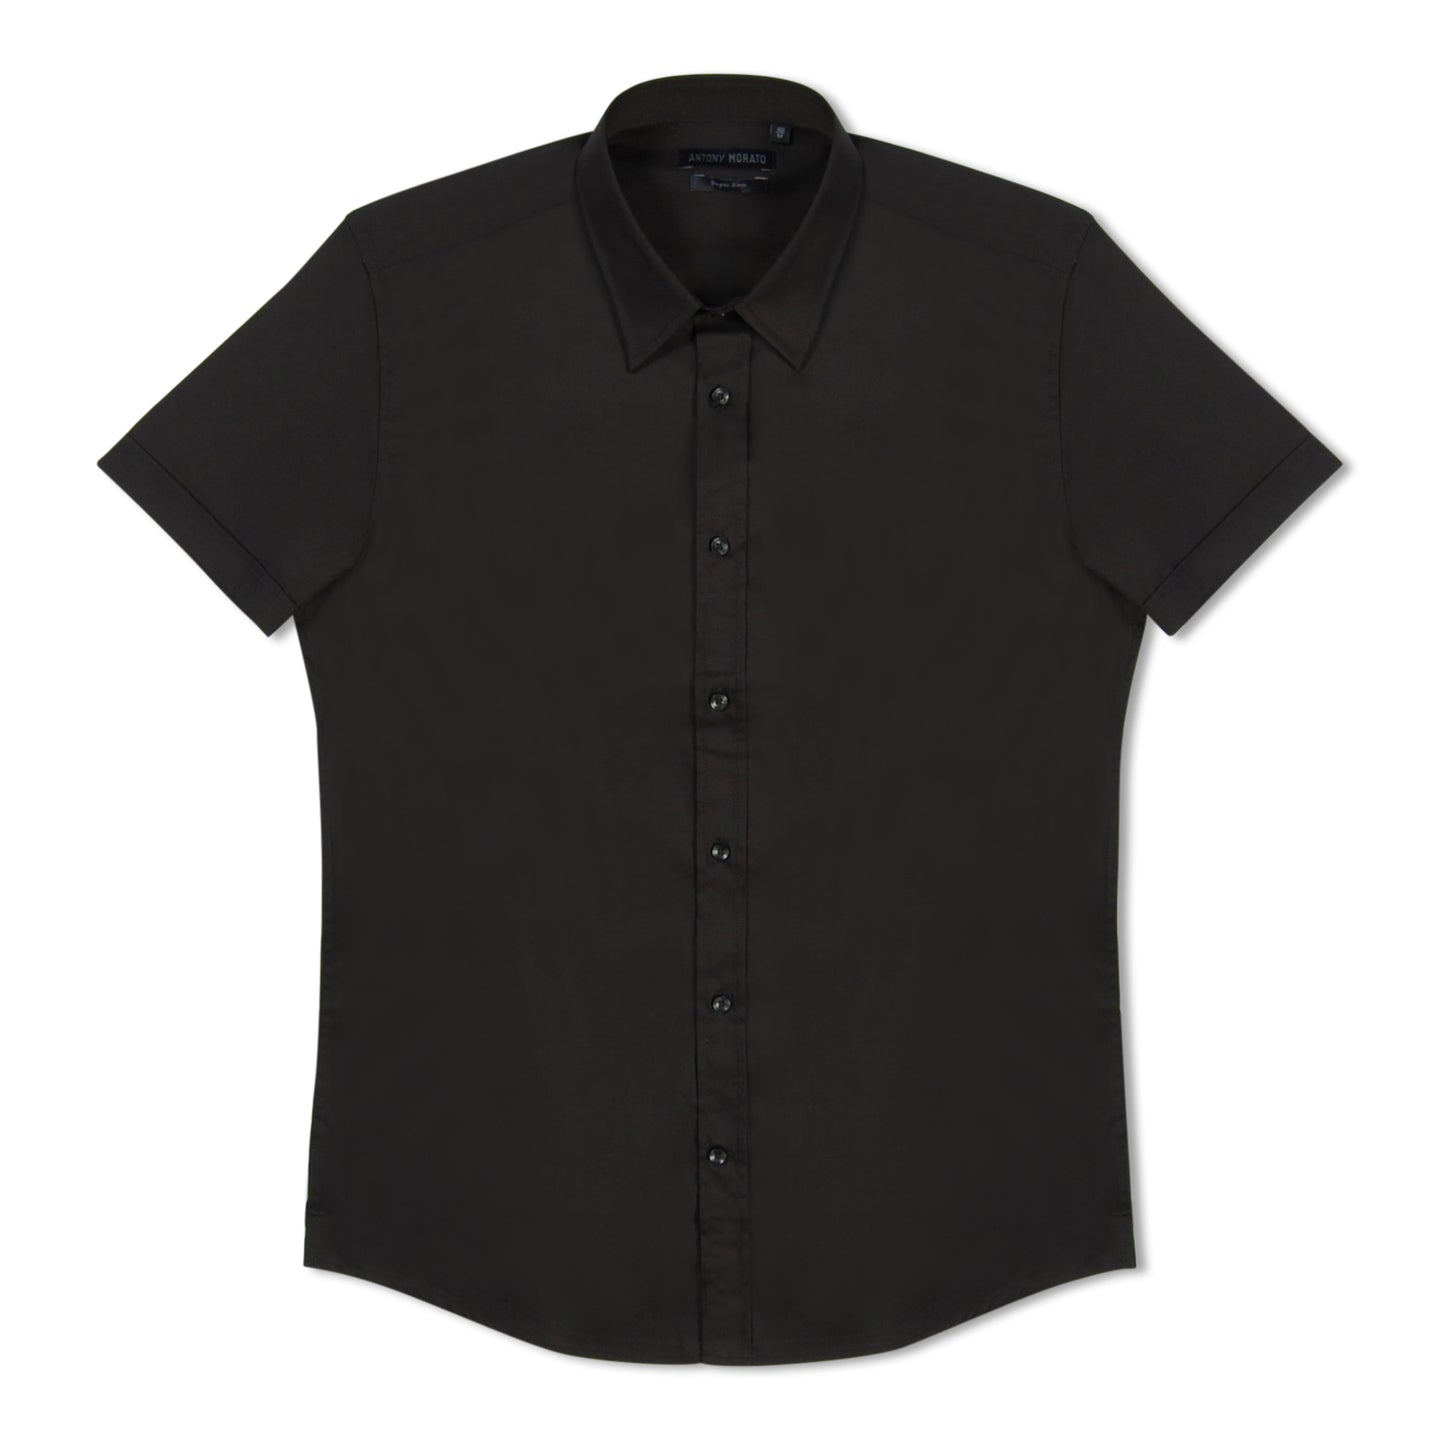 Black Antony Morato Super Slim SS Shirt